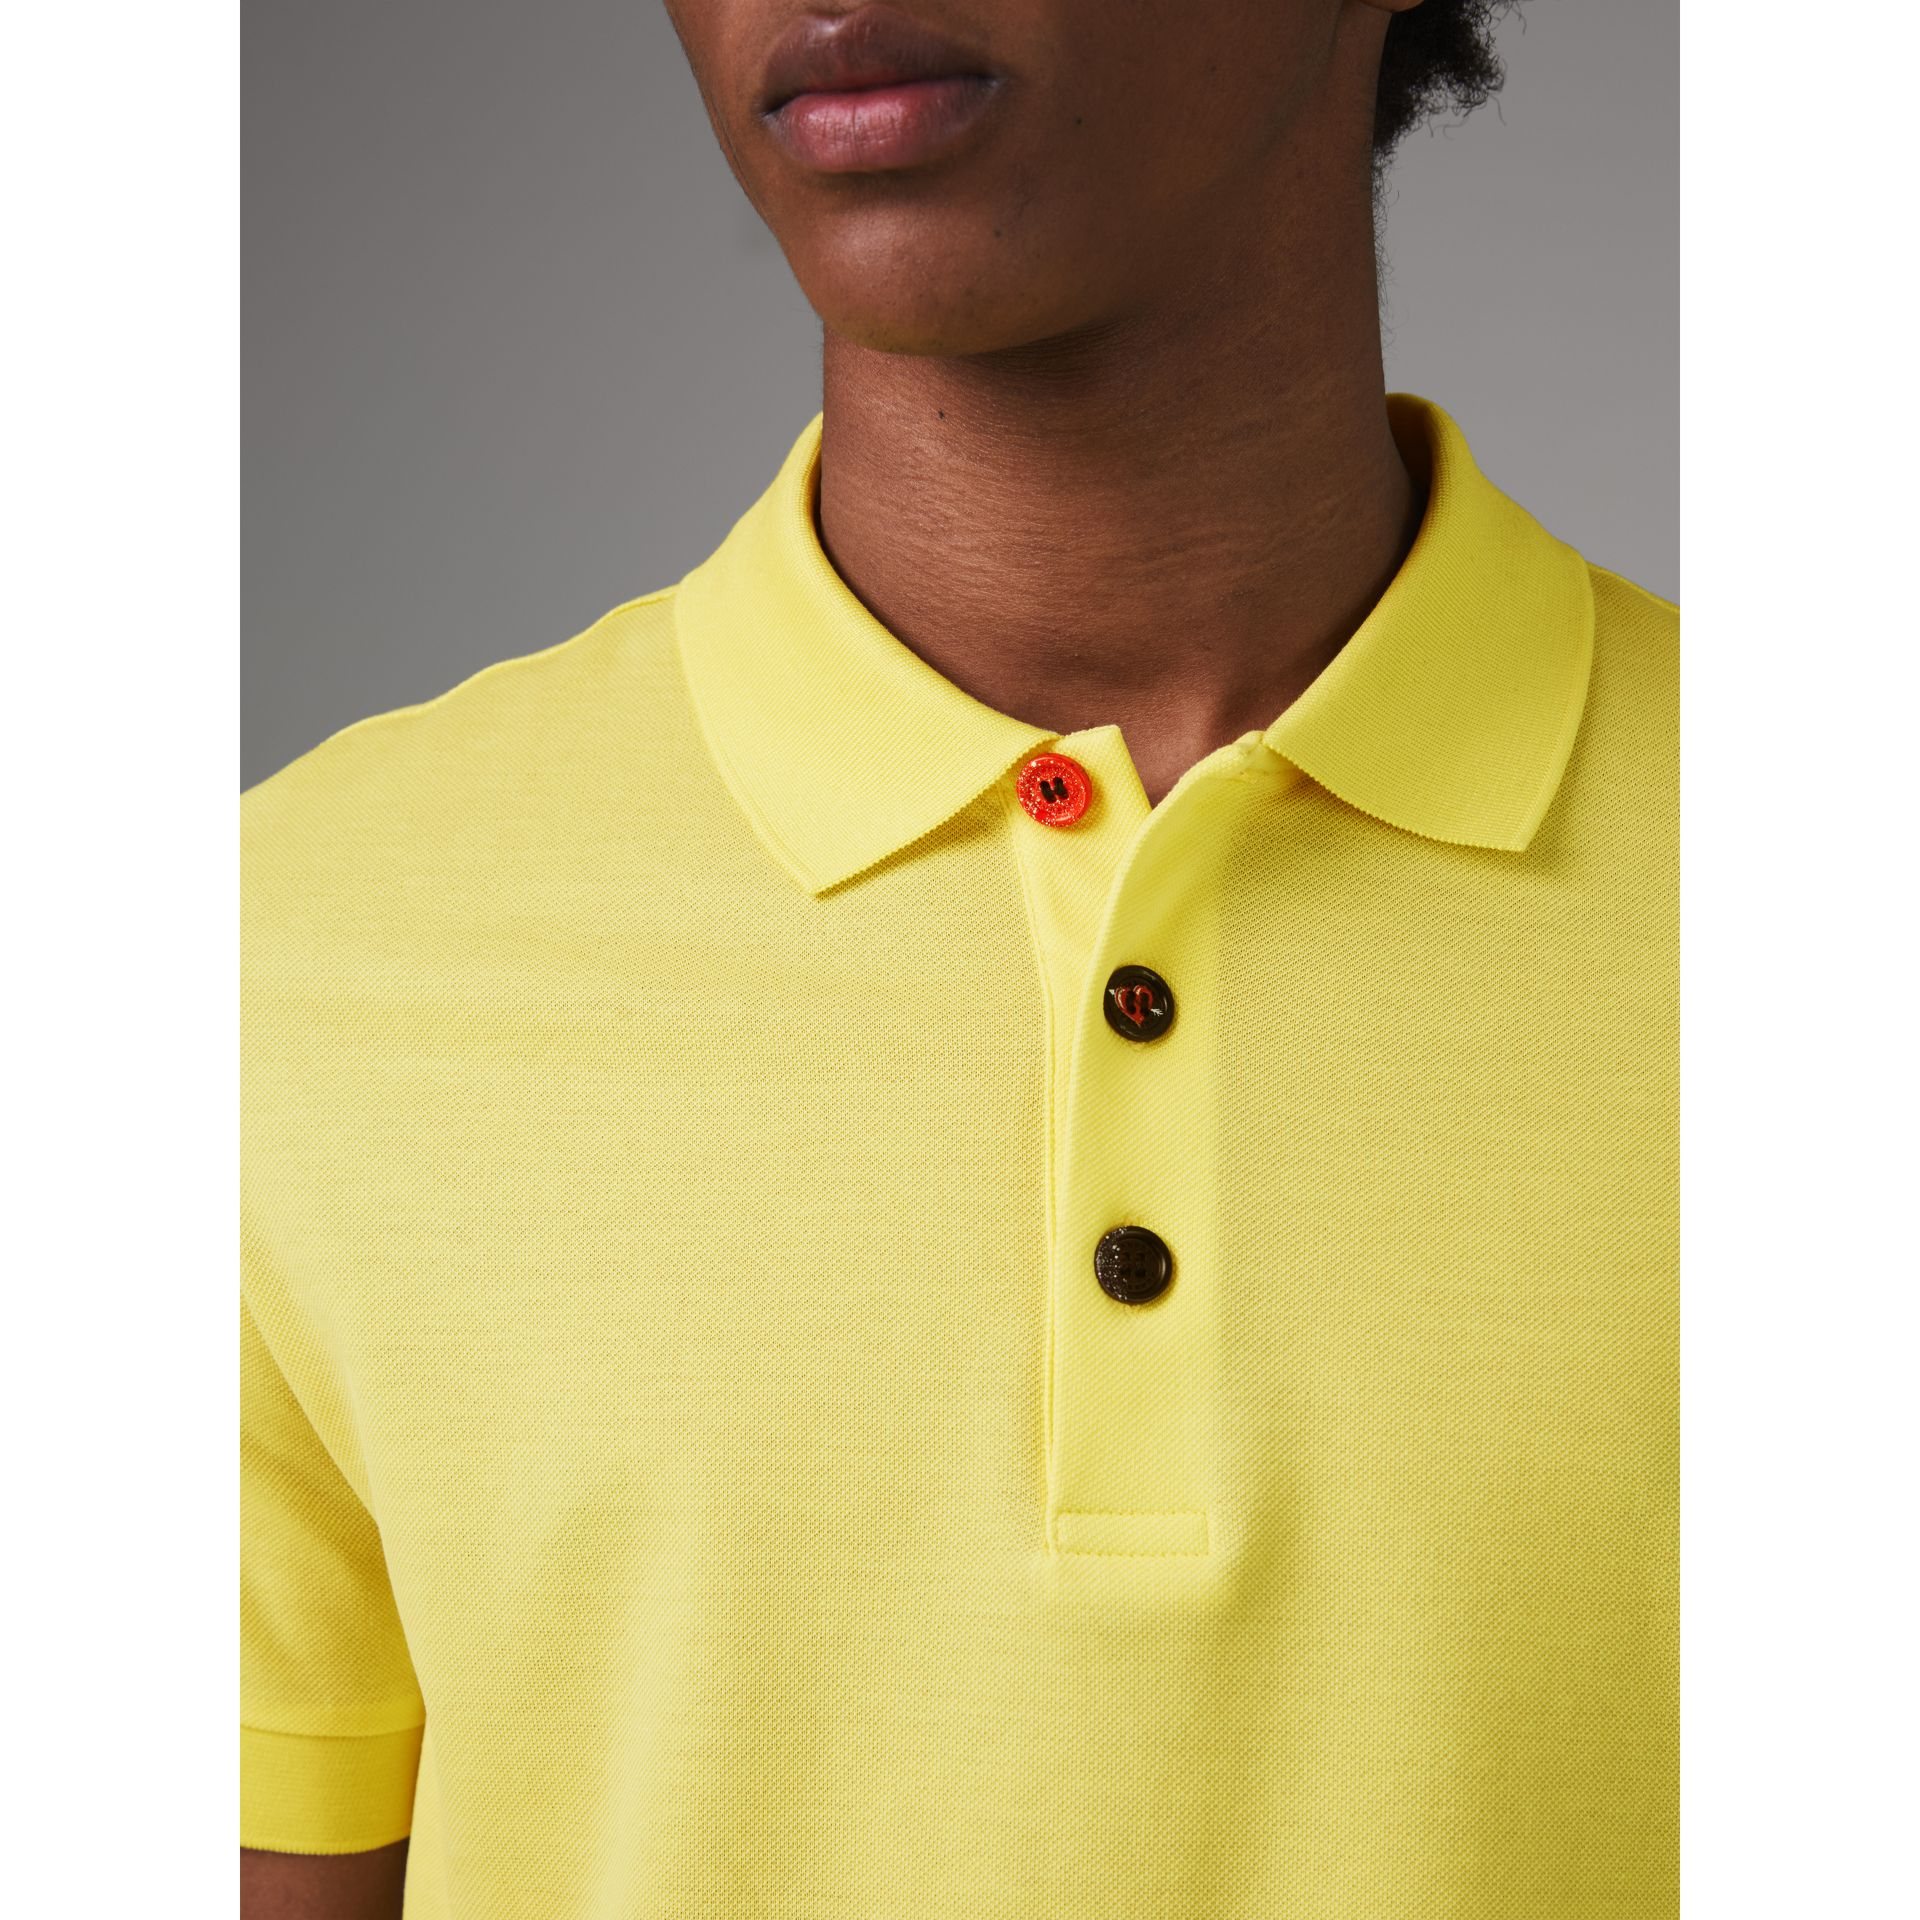 Painted Button Cotton Piqué Polo Shirt in Vibrant Lemon - Men | Burberry - gallery image 1